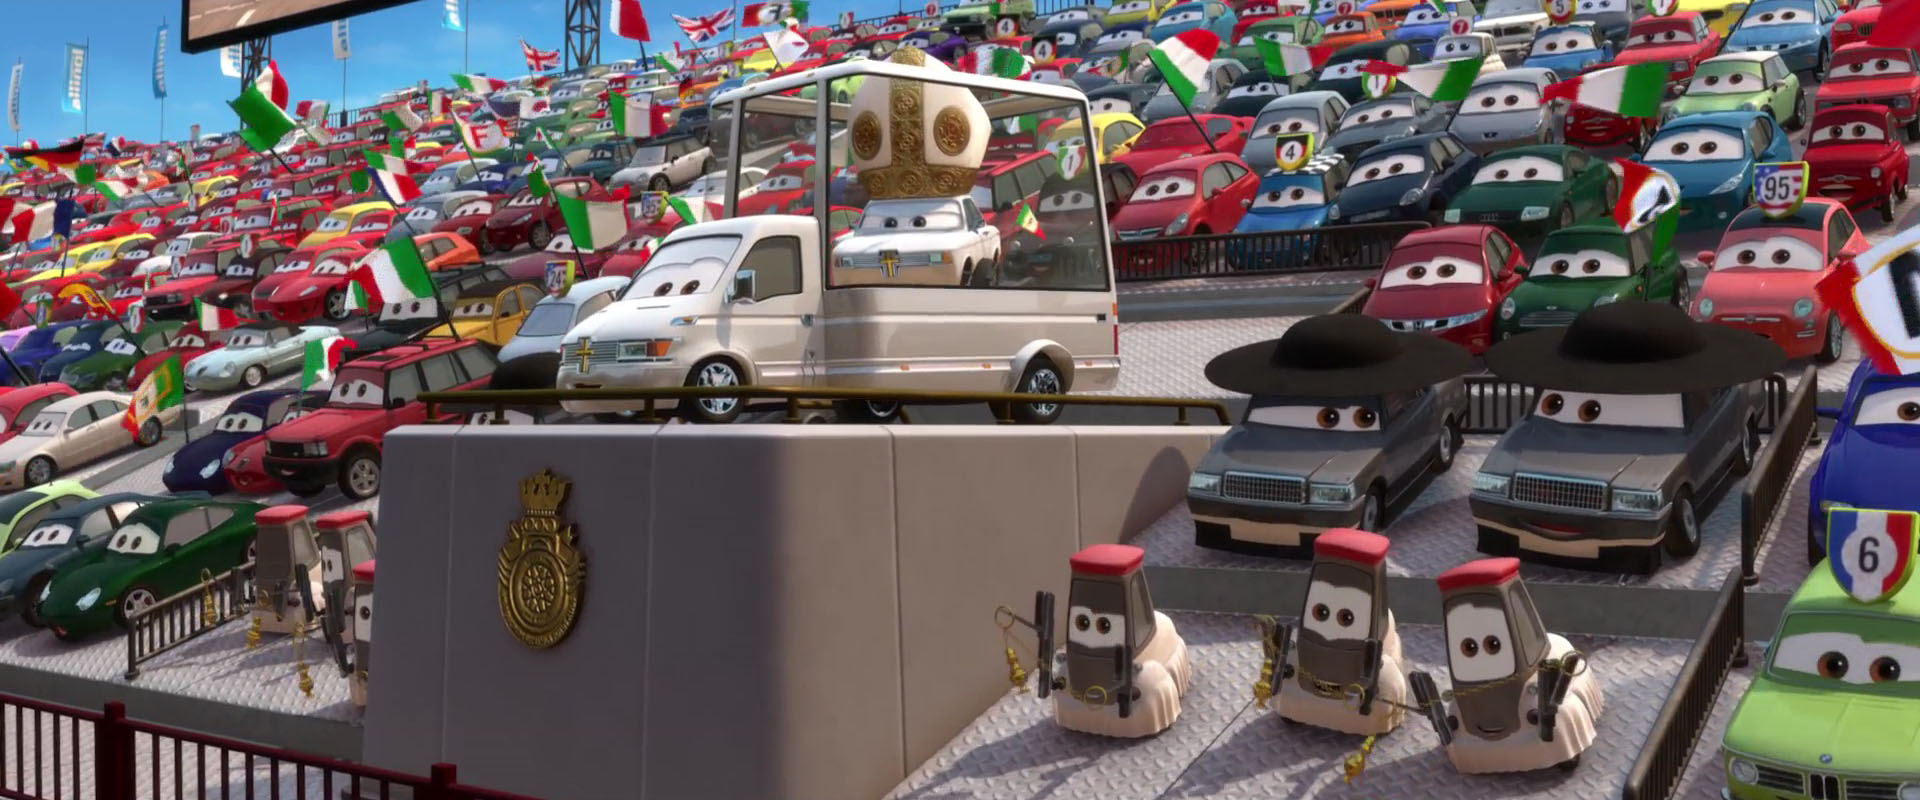 papamobile-personnage-cars-2-01